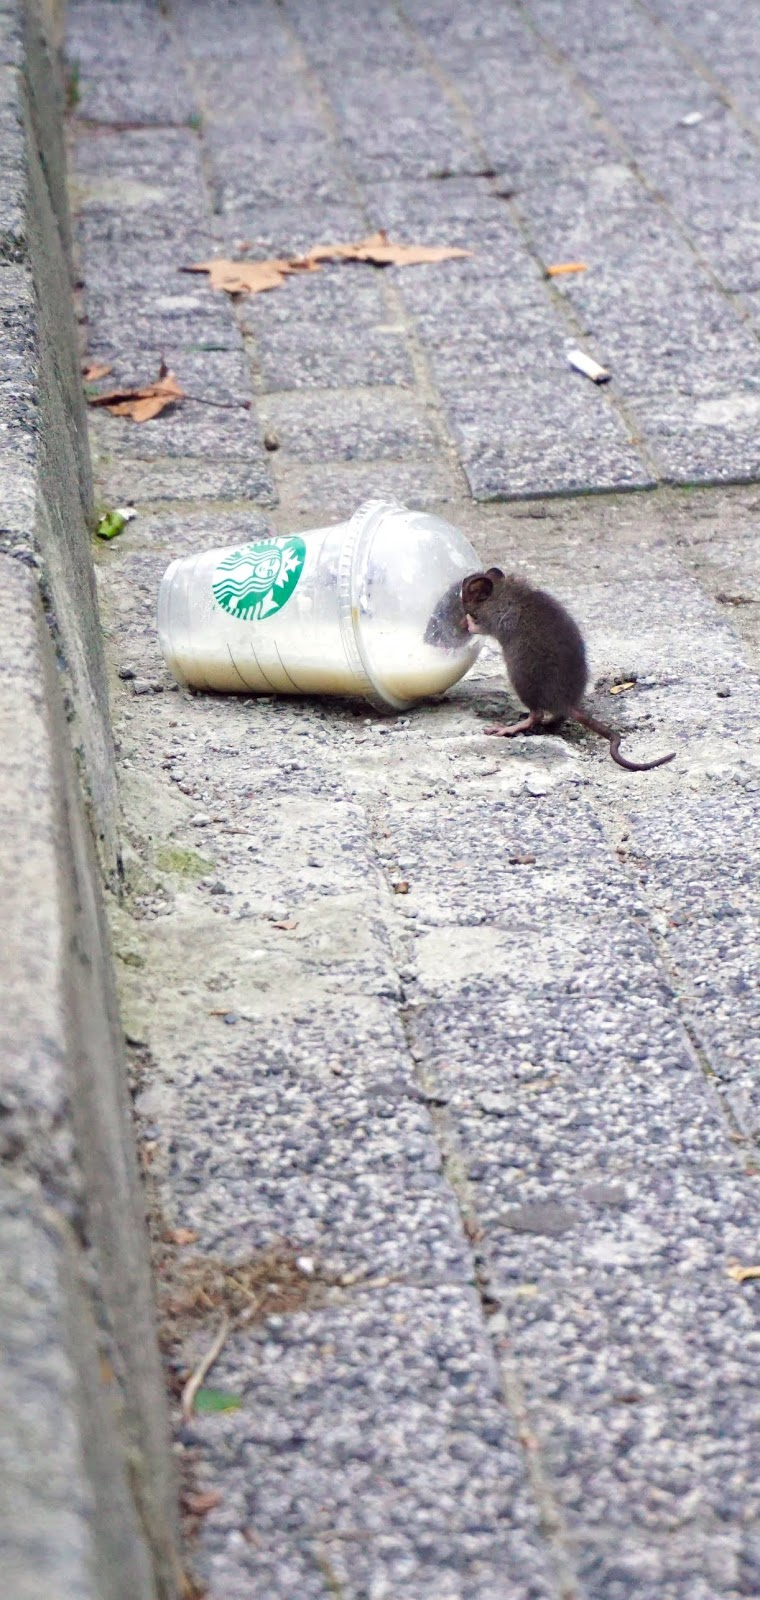 A rat having it's fill.